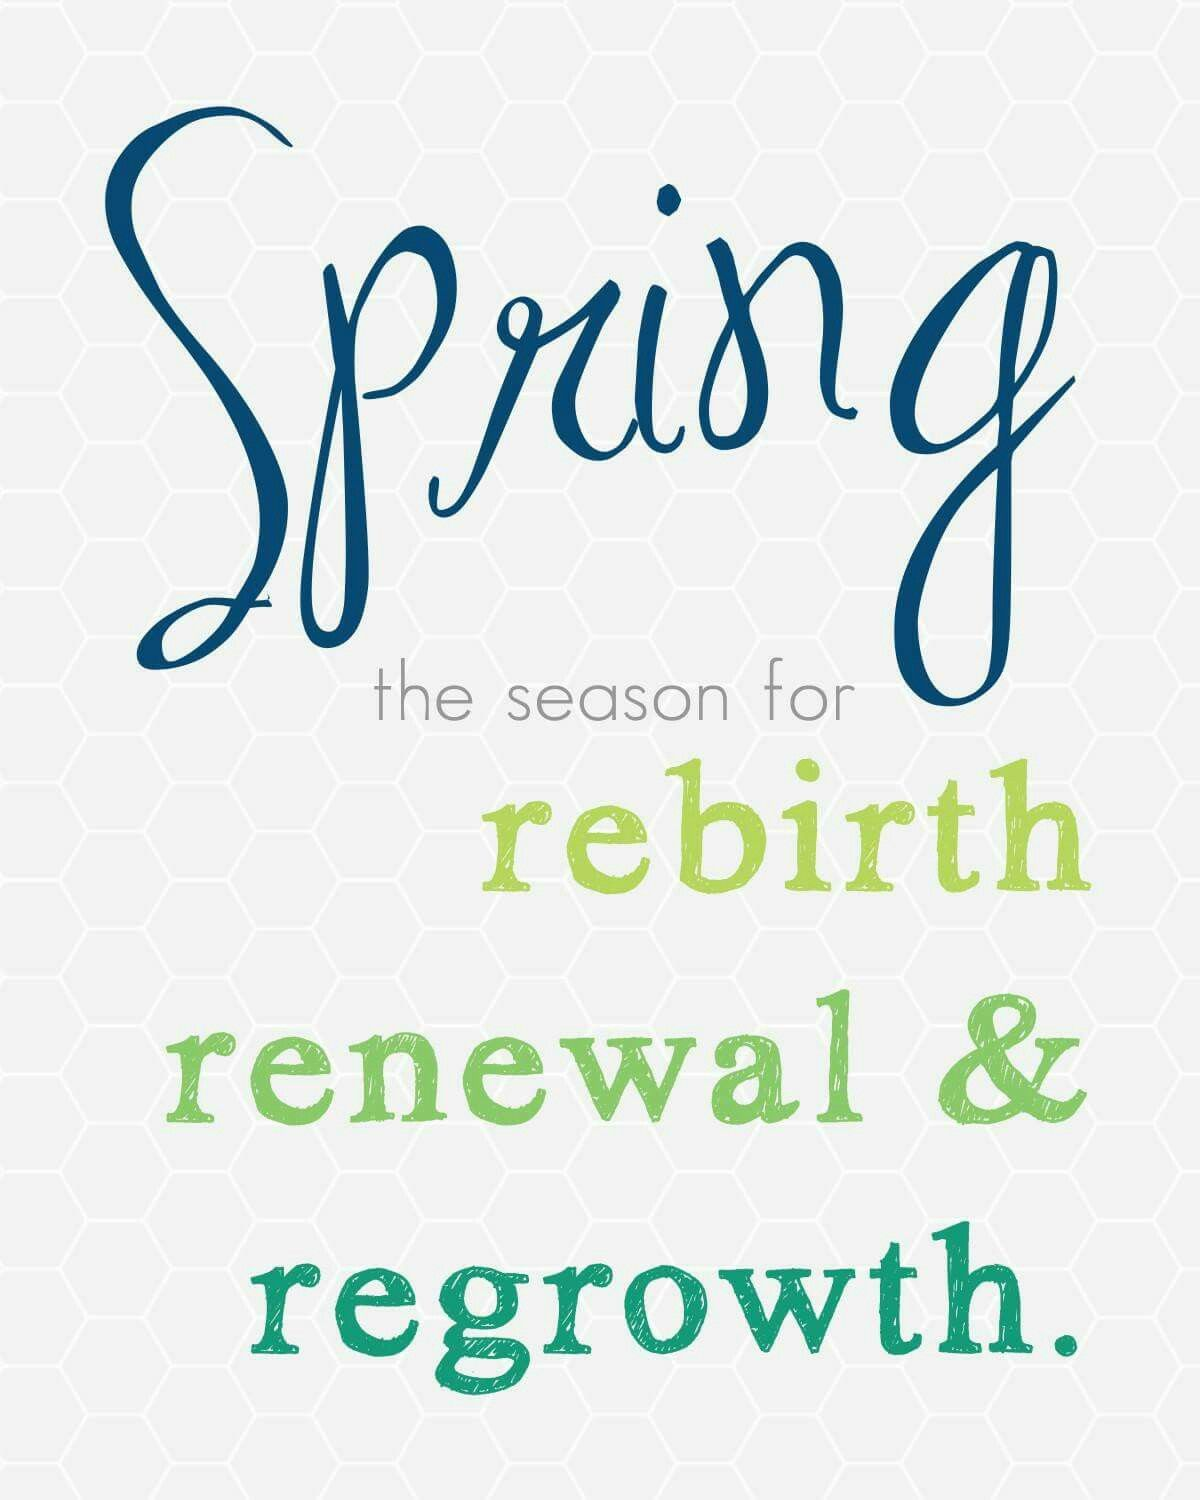 quotes about rebirth and renewal